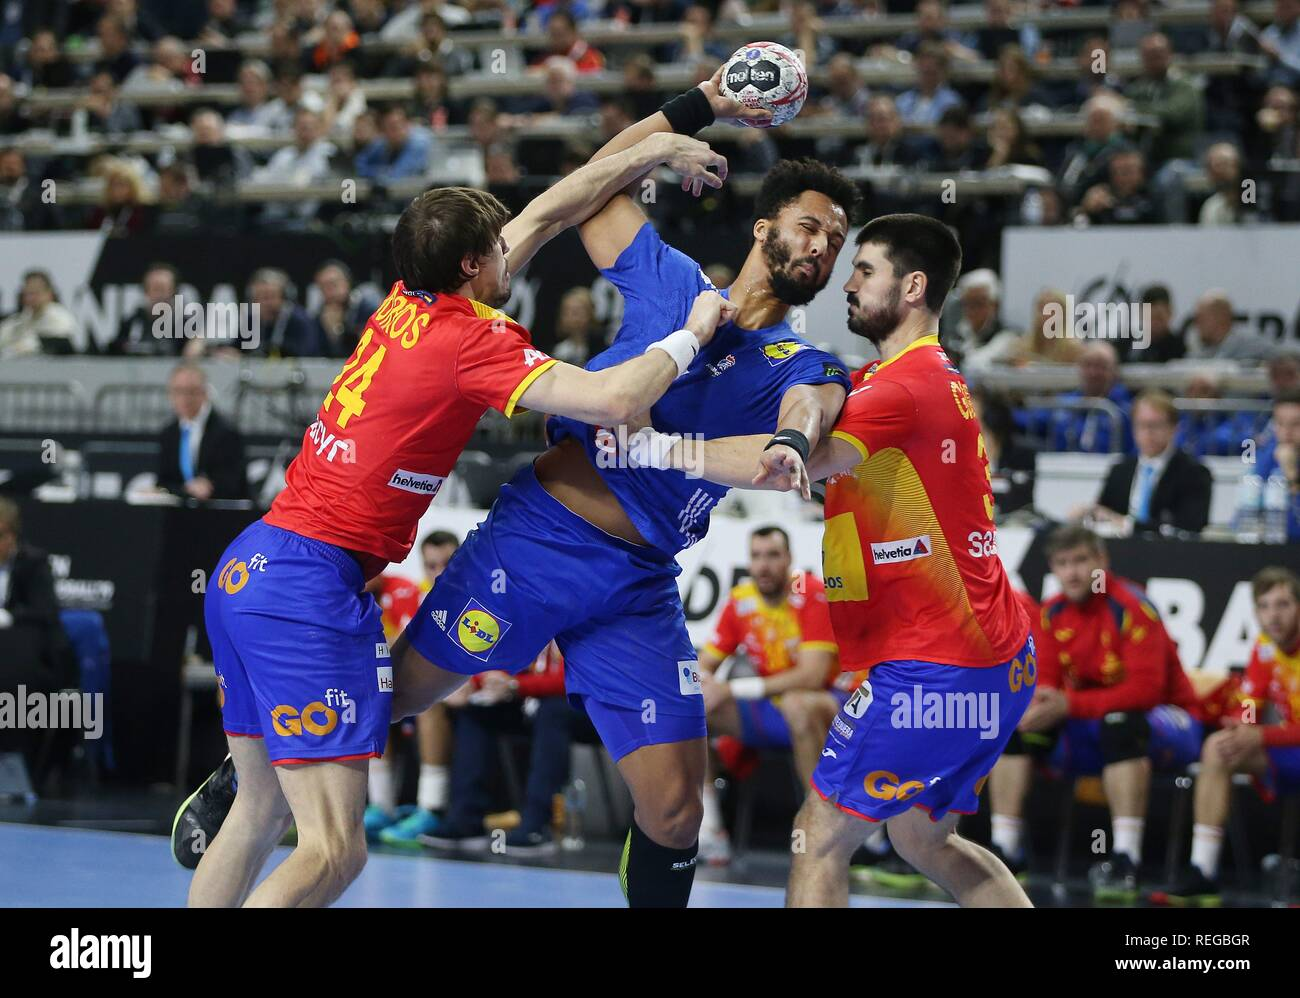 firo: 19.01.2019, Handball: World Cup World Cup Main Round France - Spain duels, Timothy N Guessan, FRA   usage worldwide - Stock Image